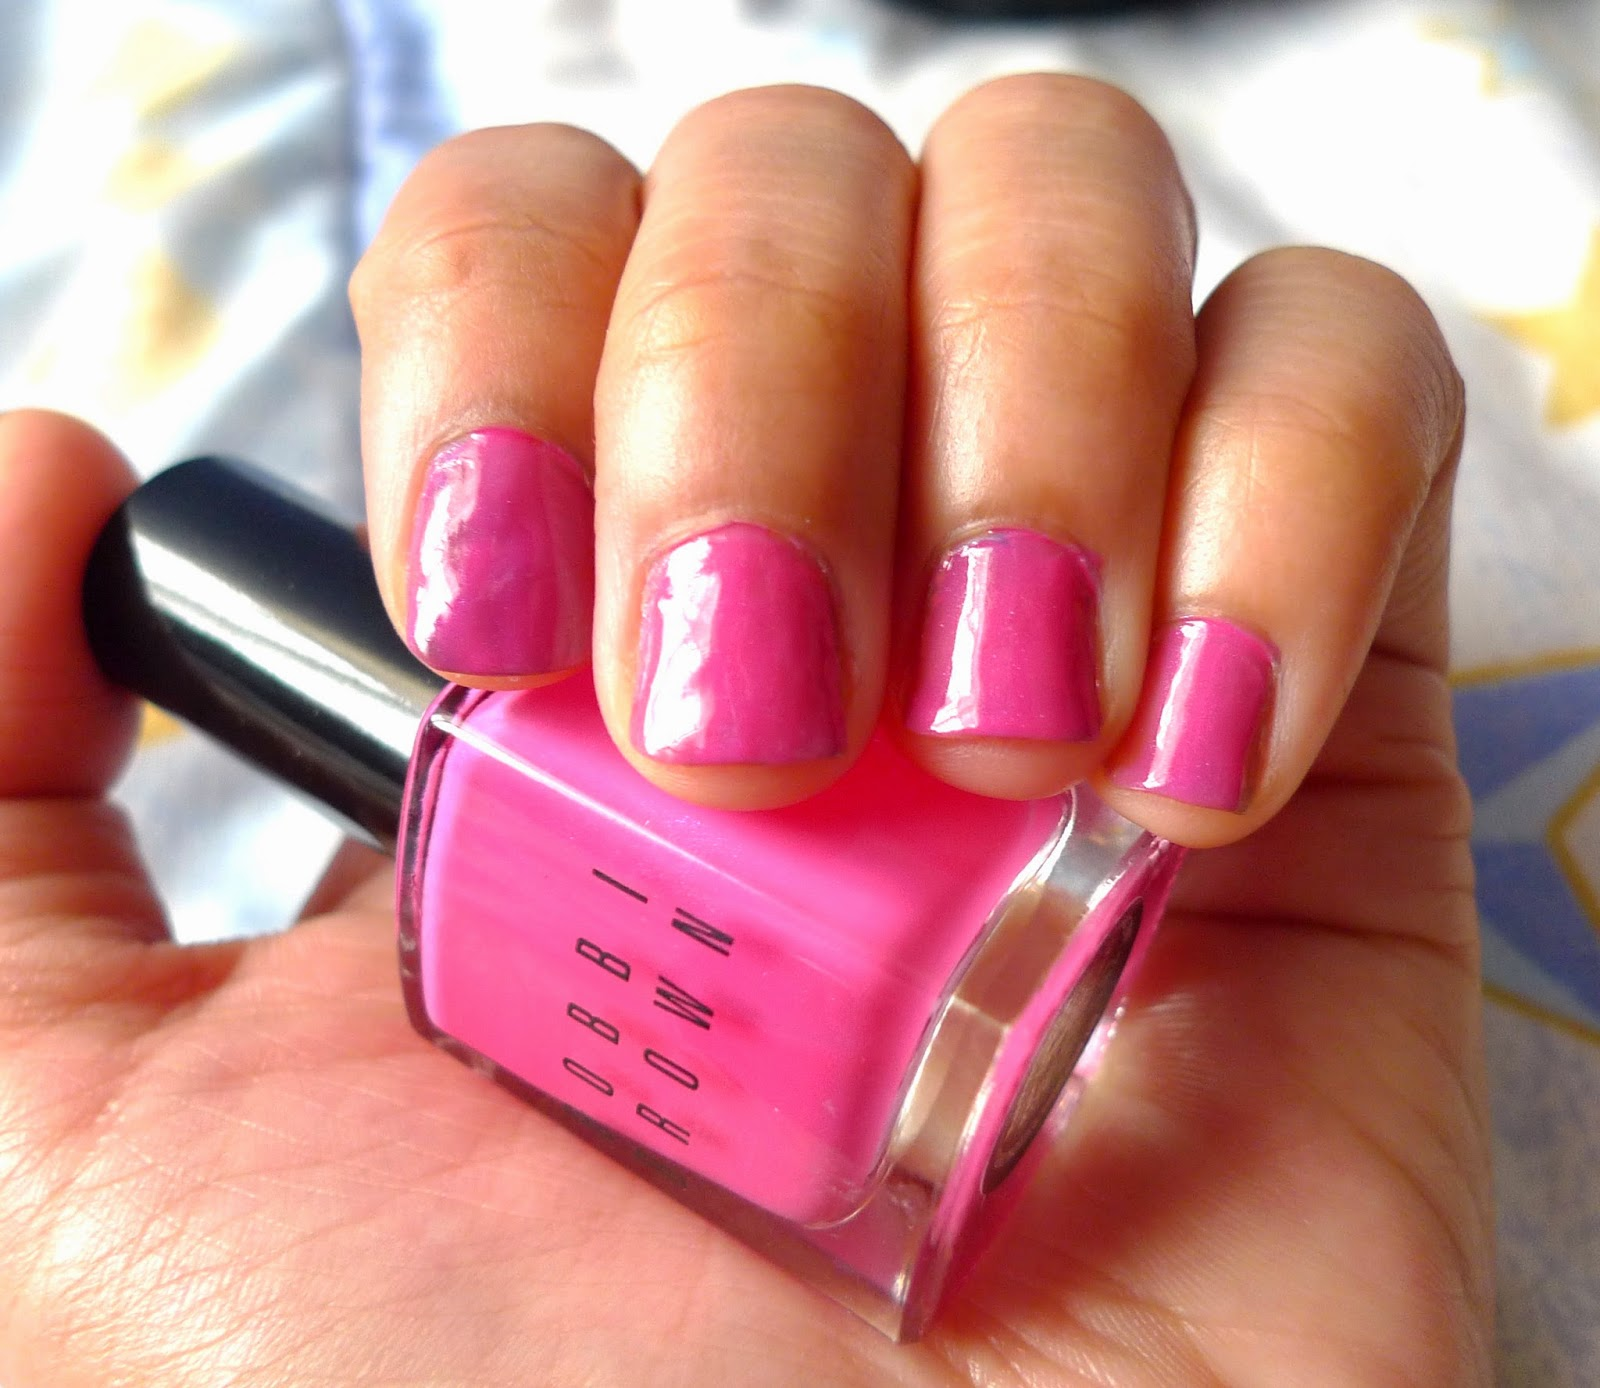 Bobbi Brown Nail Polish in Pink Valentine and Bronze Review | The ...